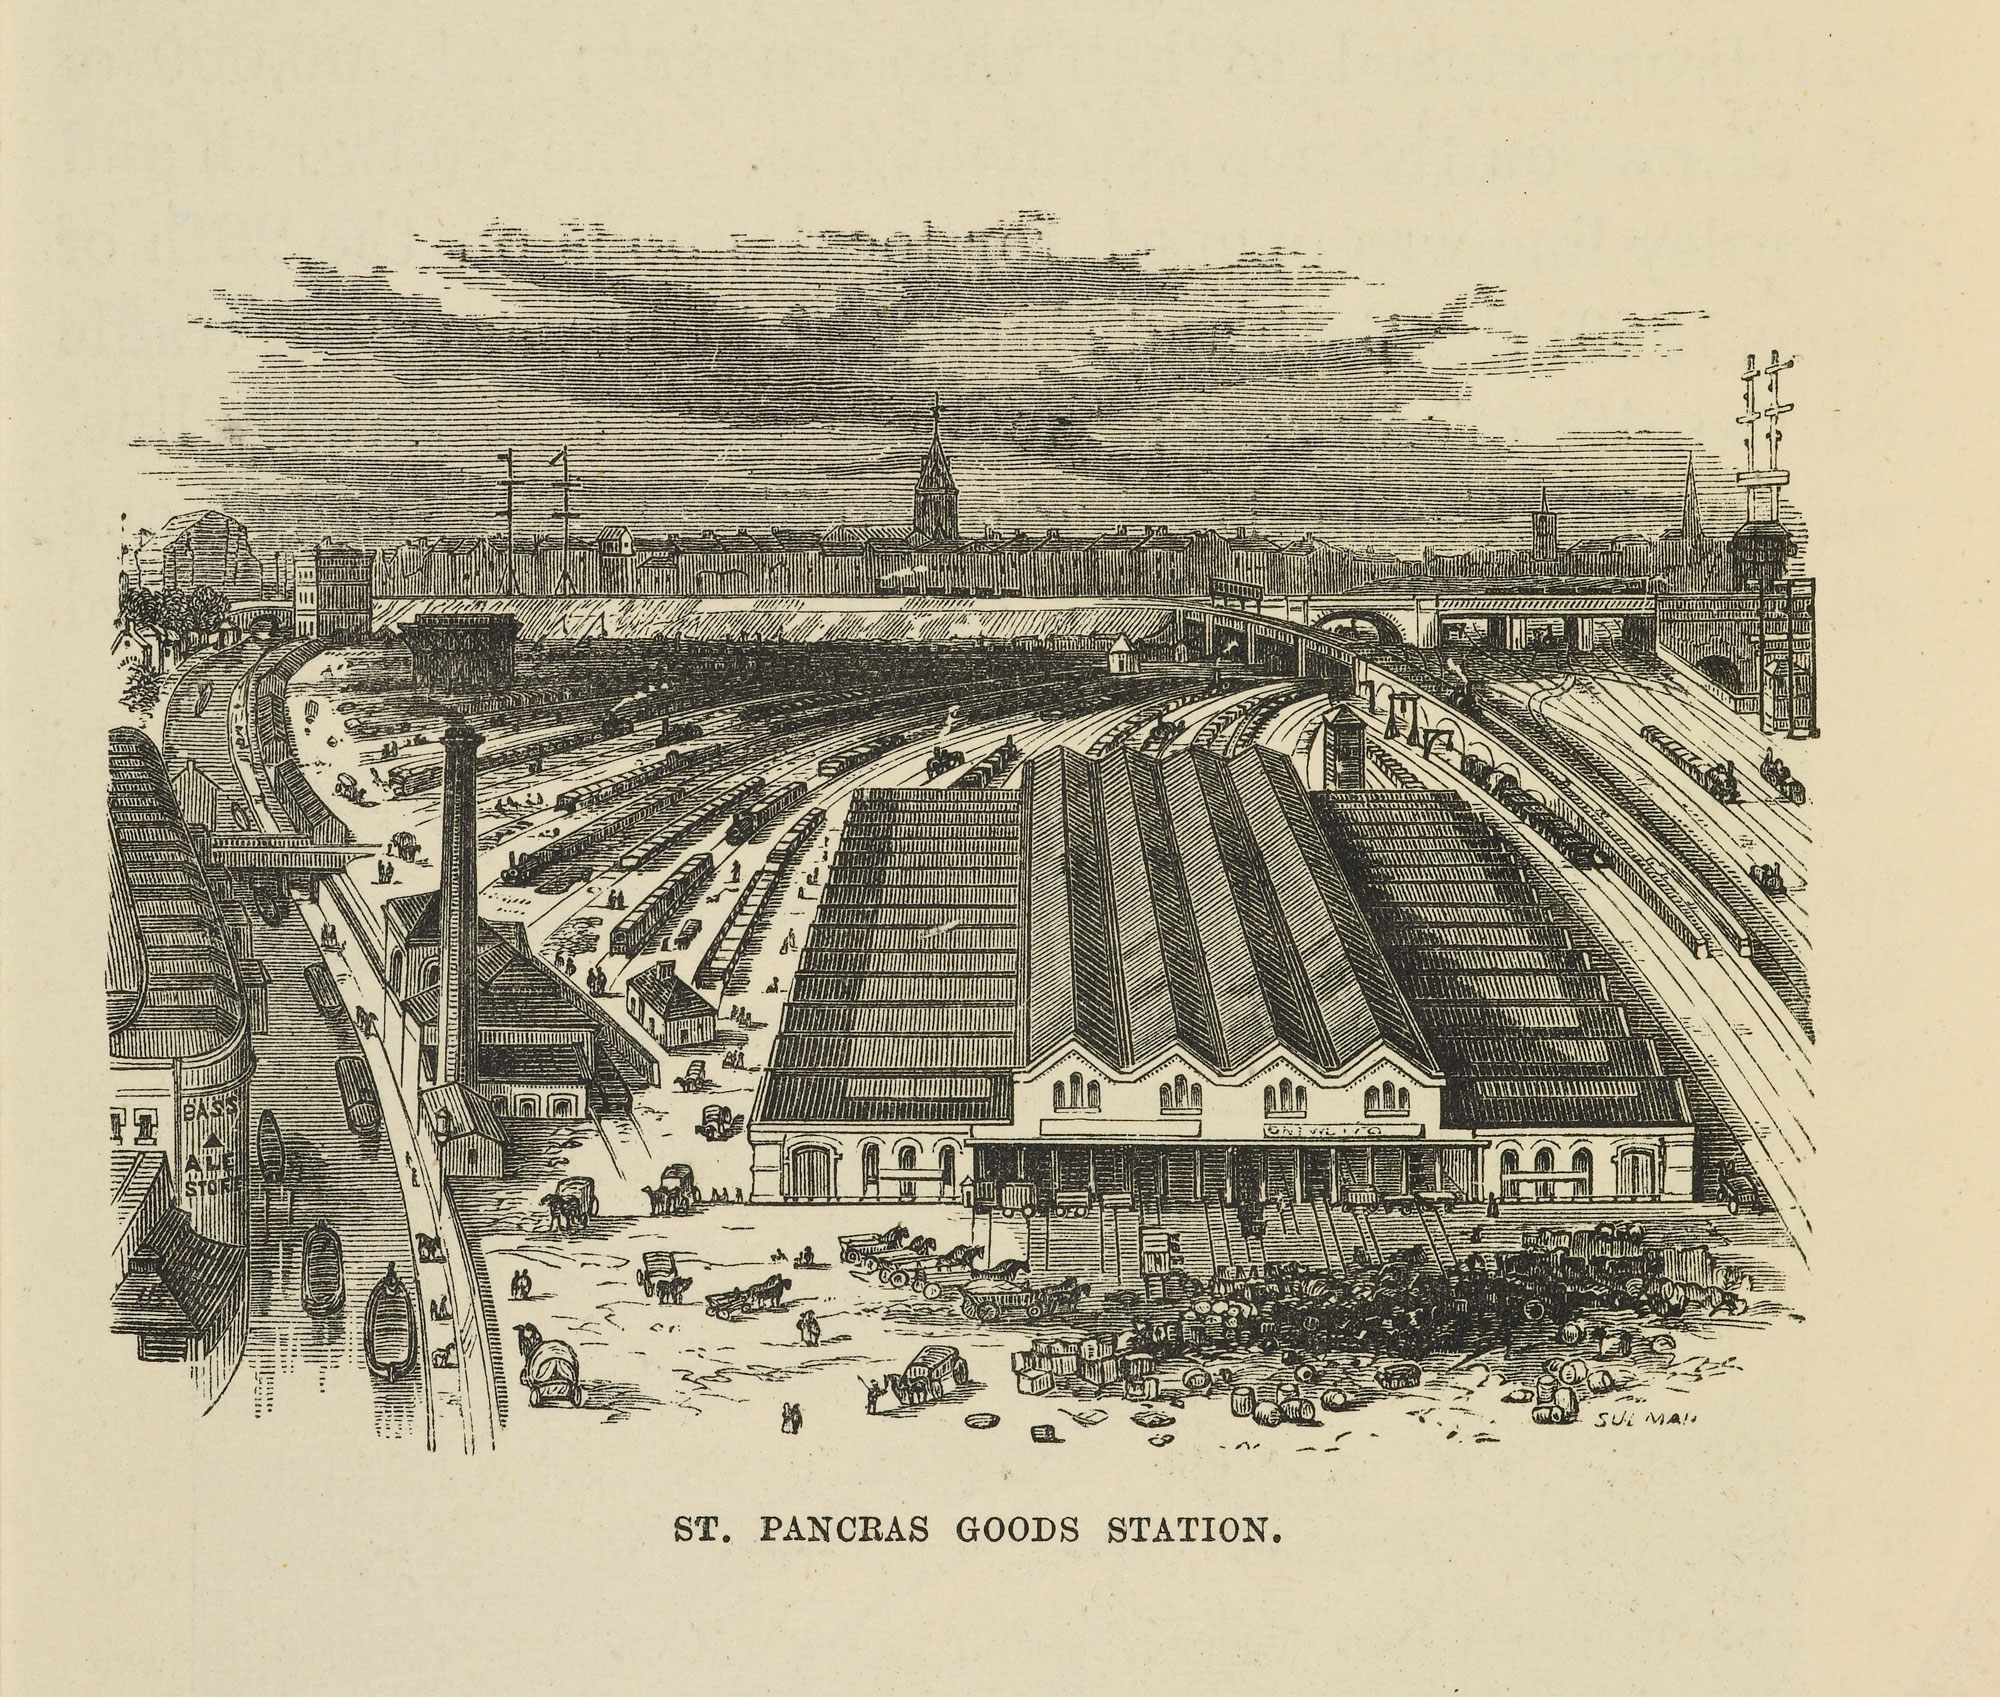 Illustrations of the Midland Railway [page: p. 258]